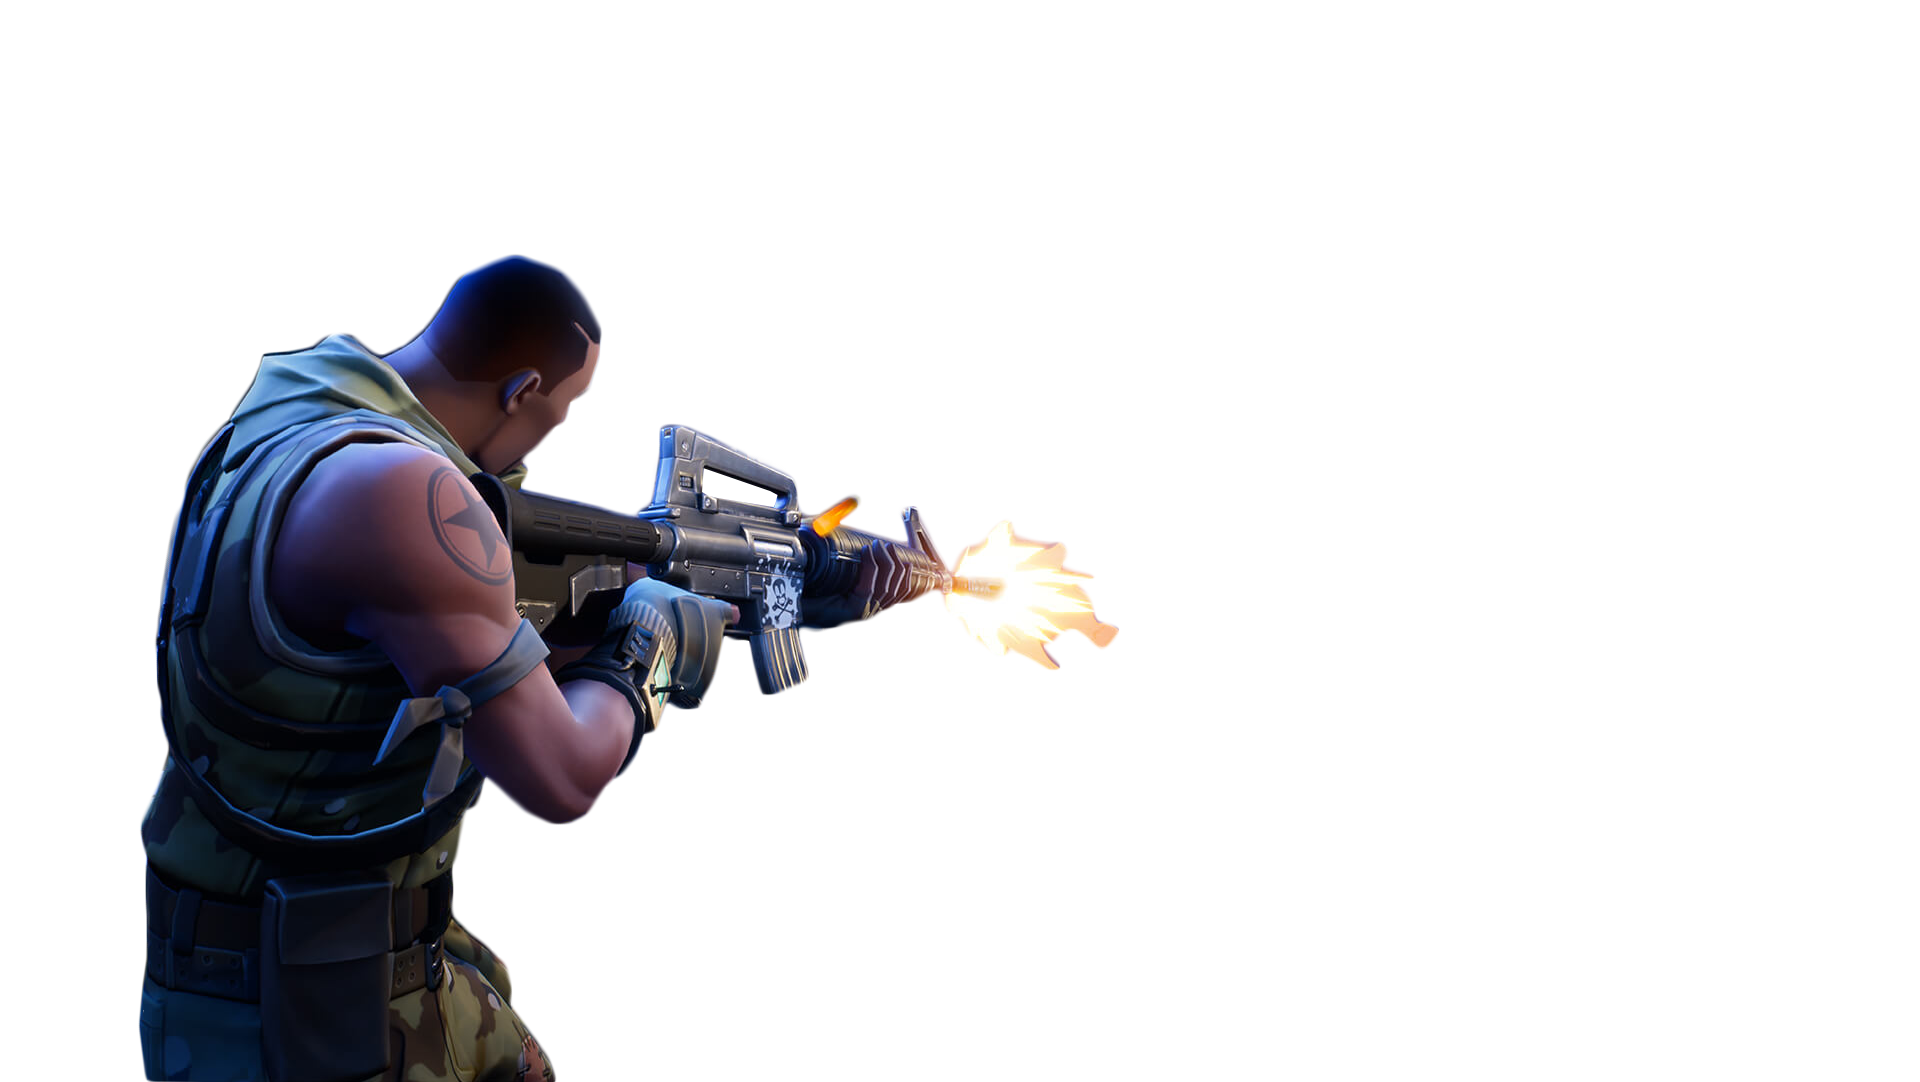 Person Shooting Fortnite Thumbnail Template PNG Image